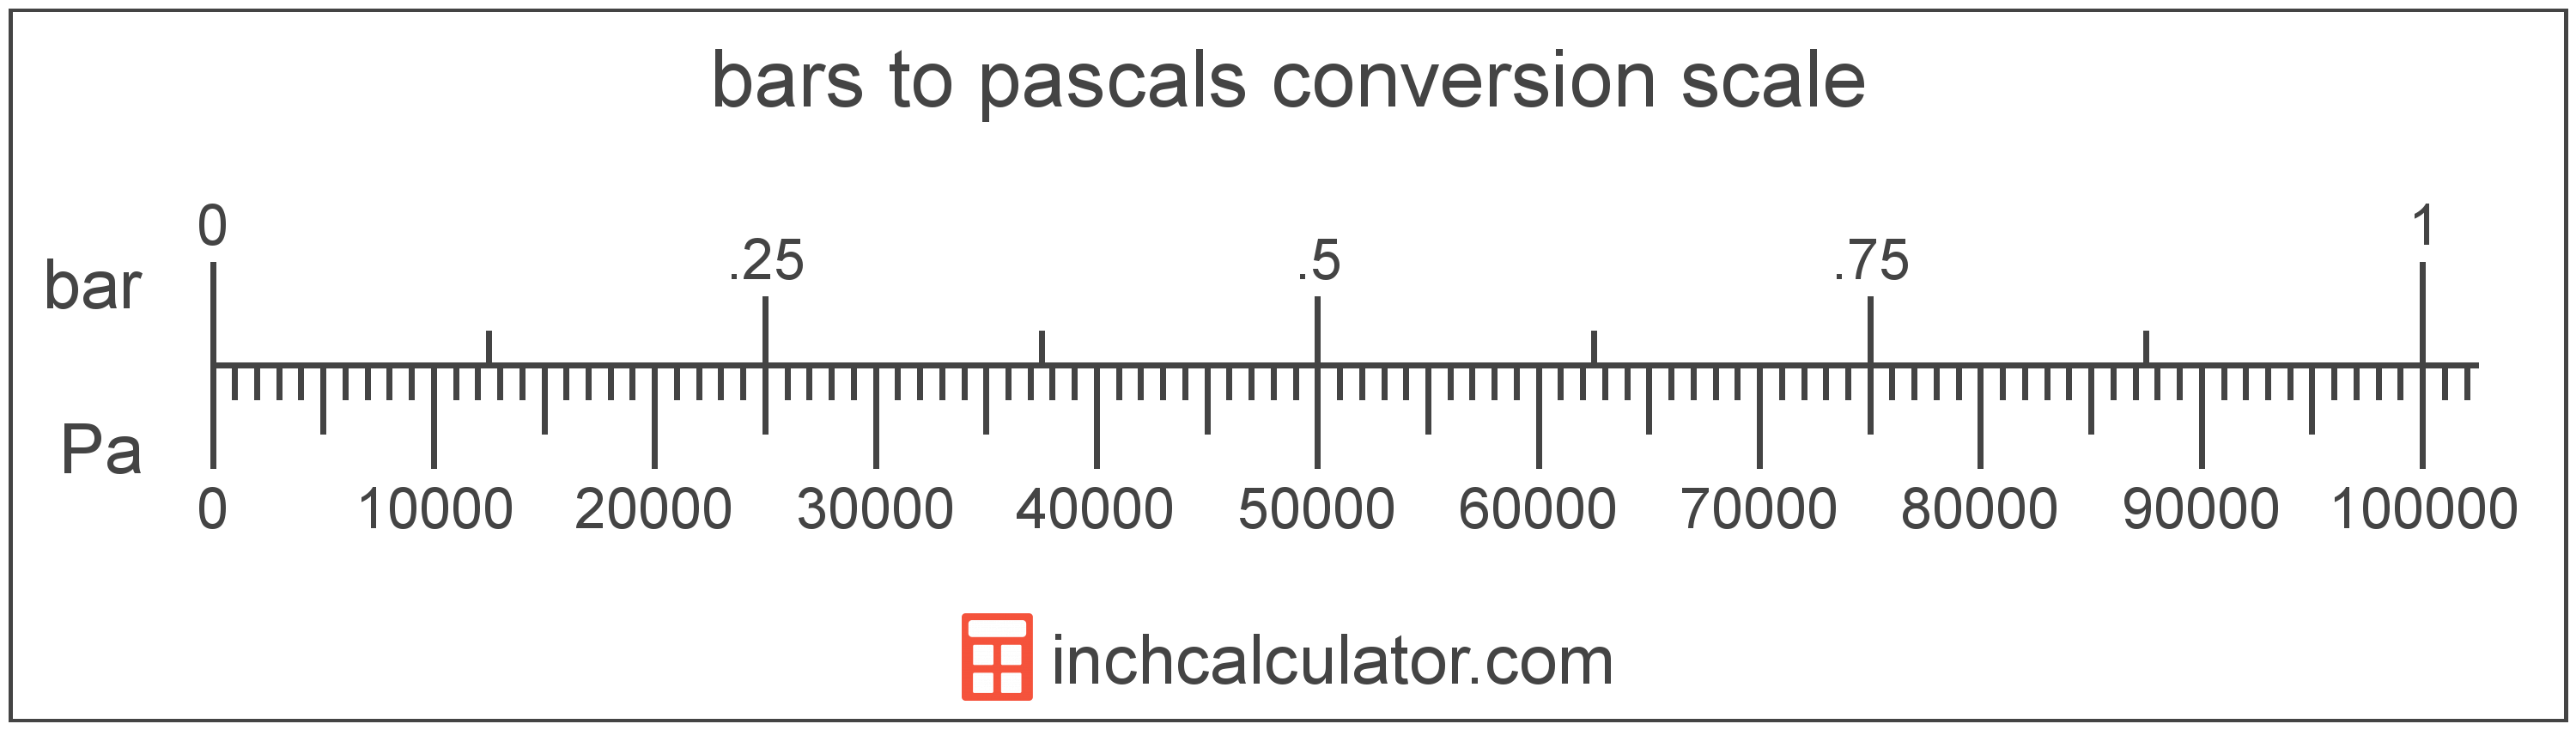 conversion scale showing pascals and equivalent bars pressure values